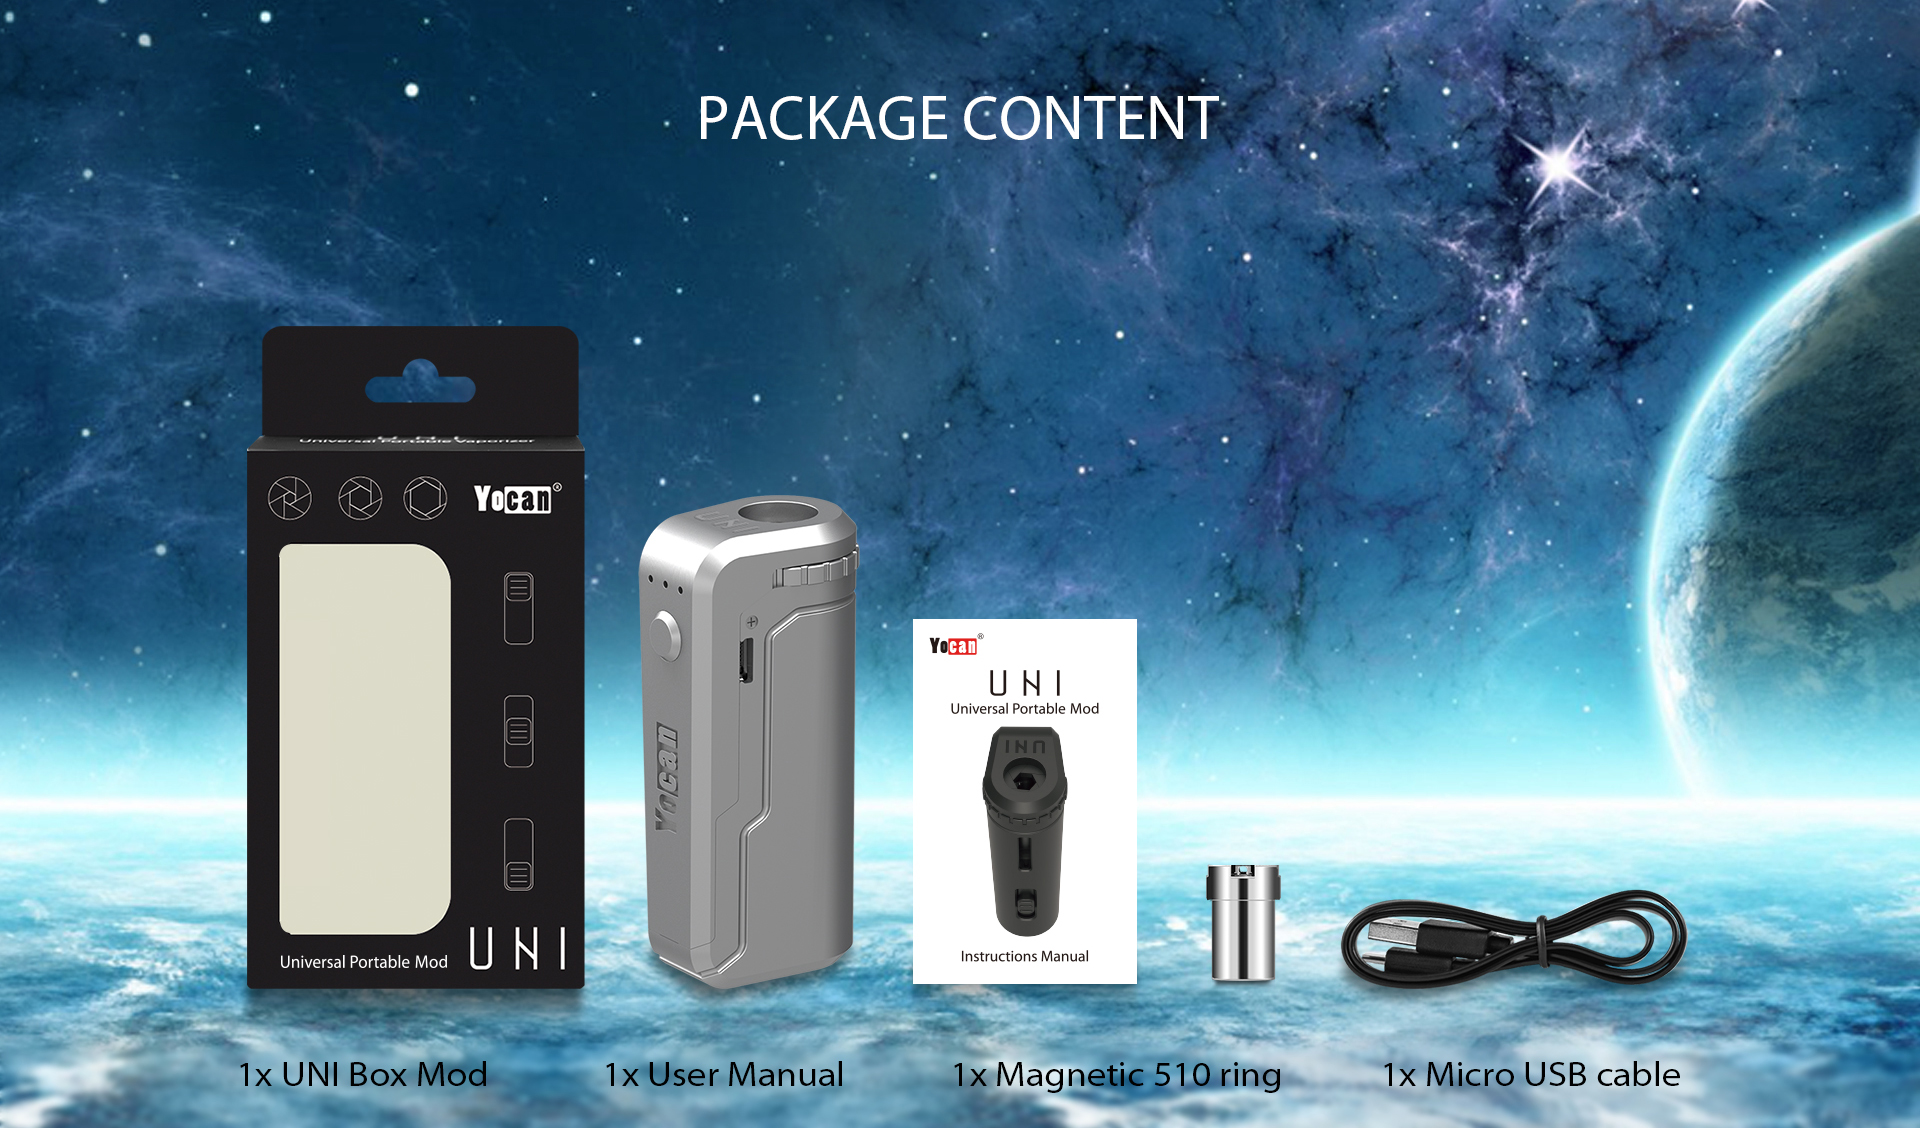 Yocan UNI package content